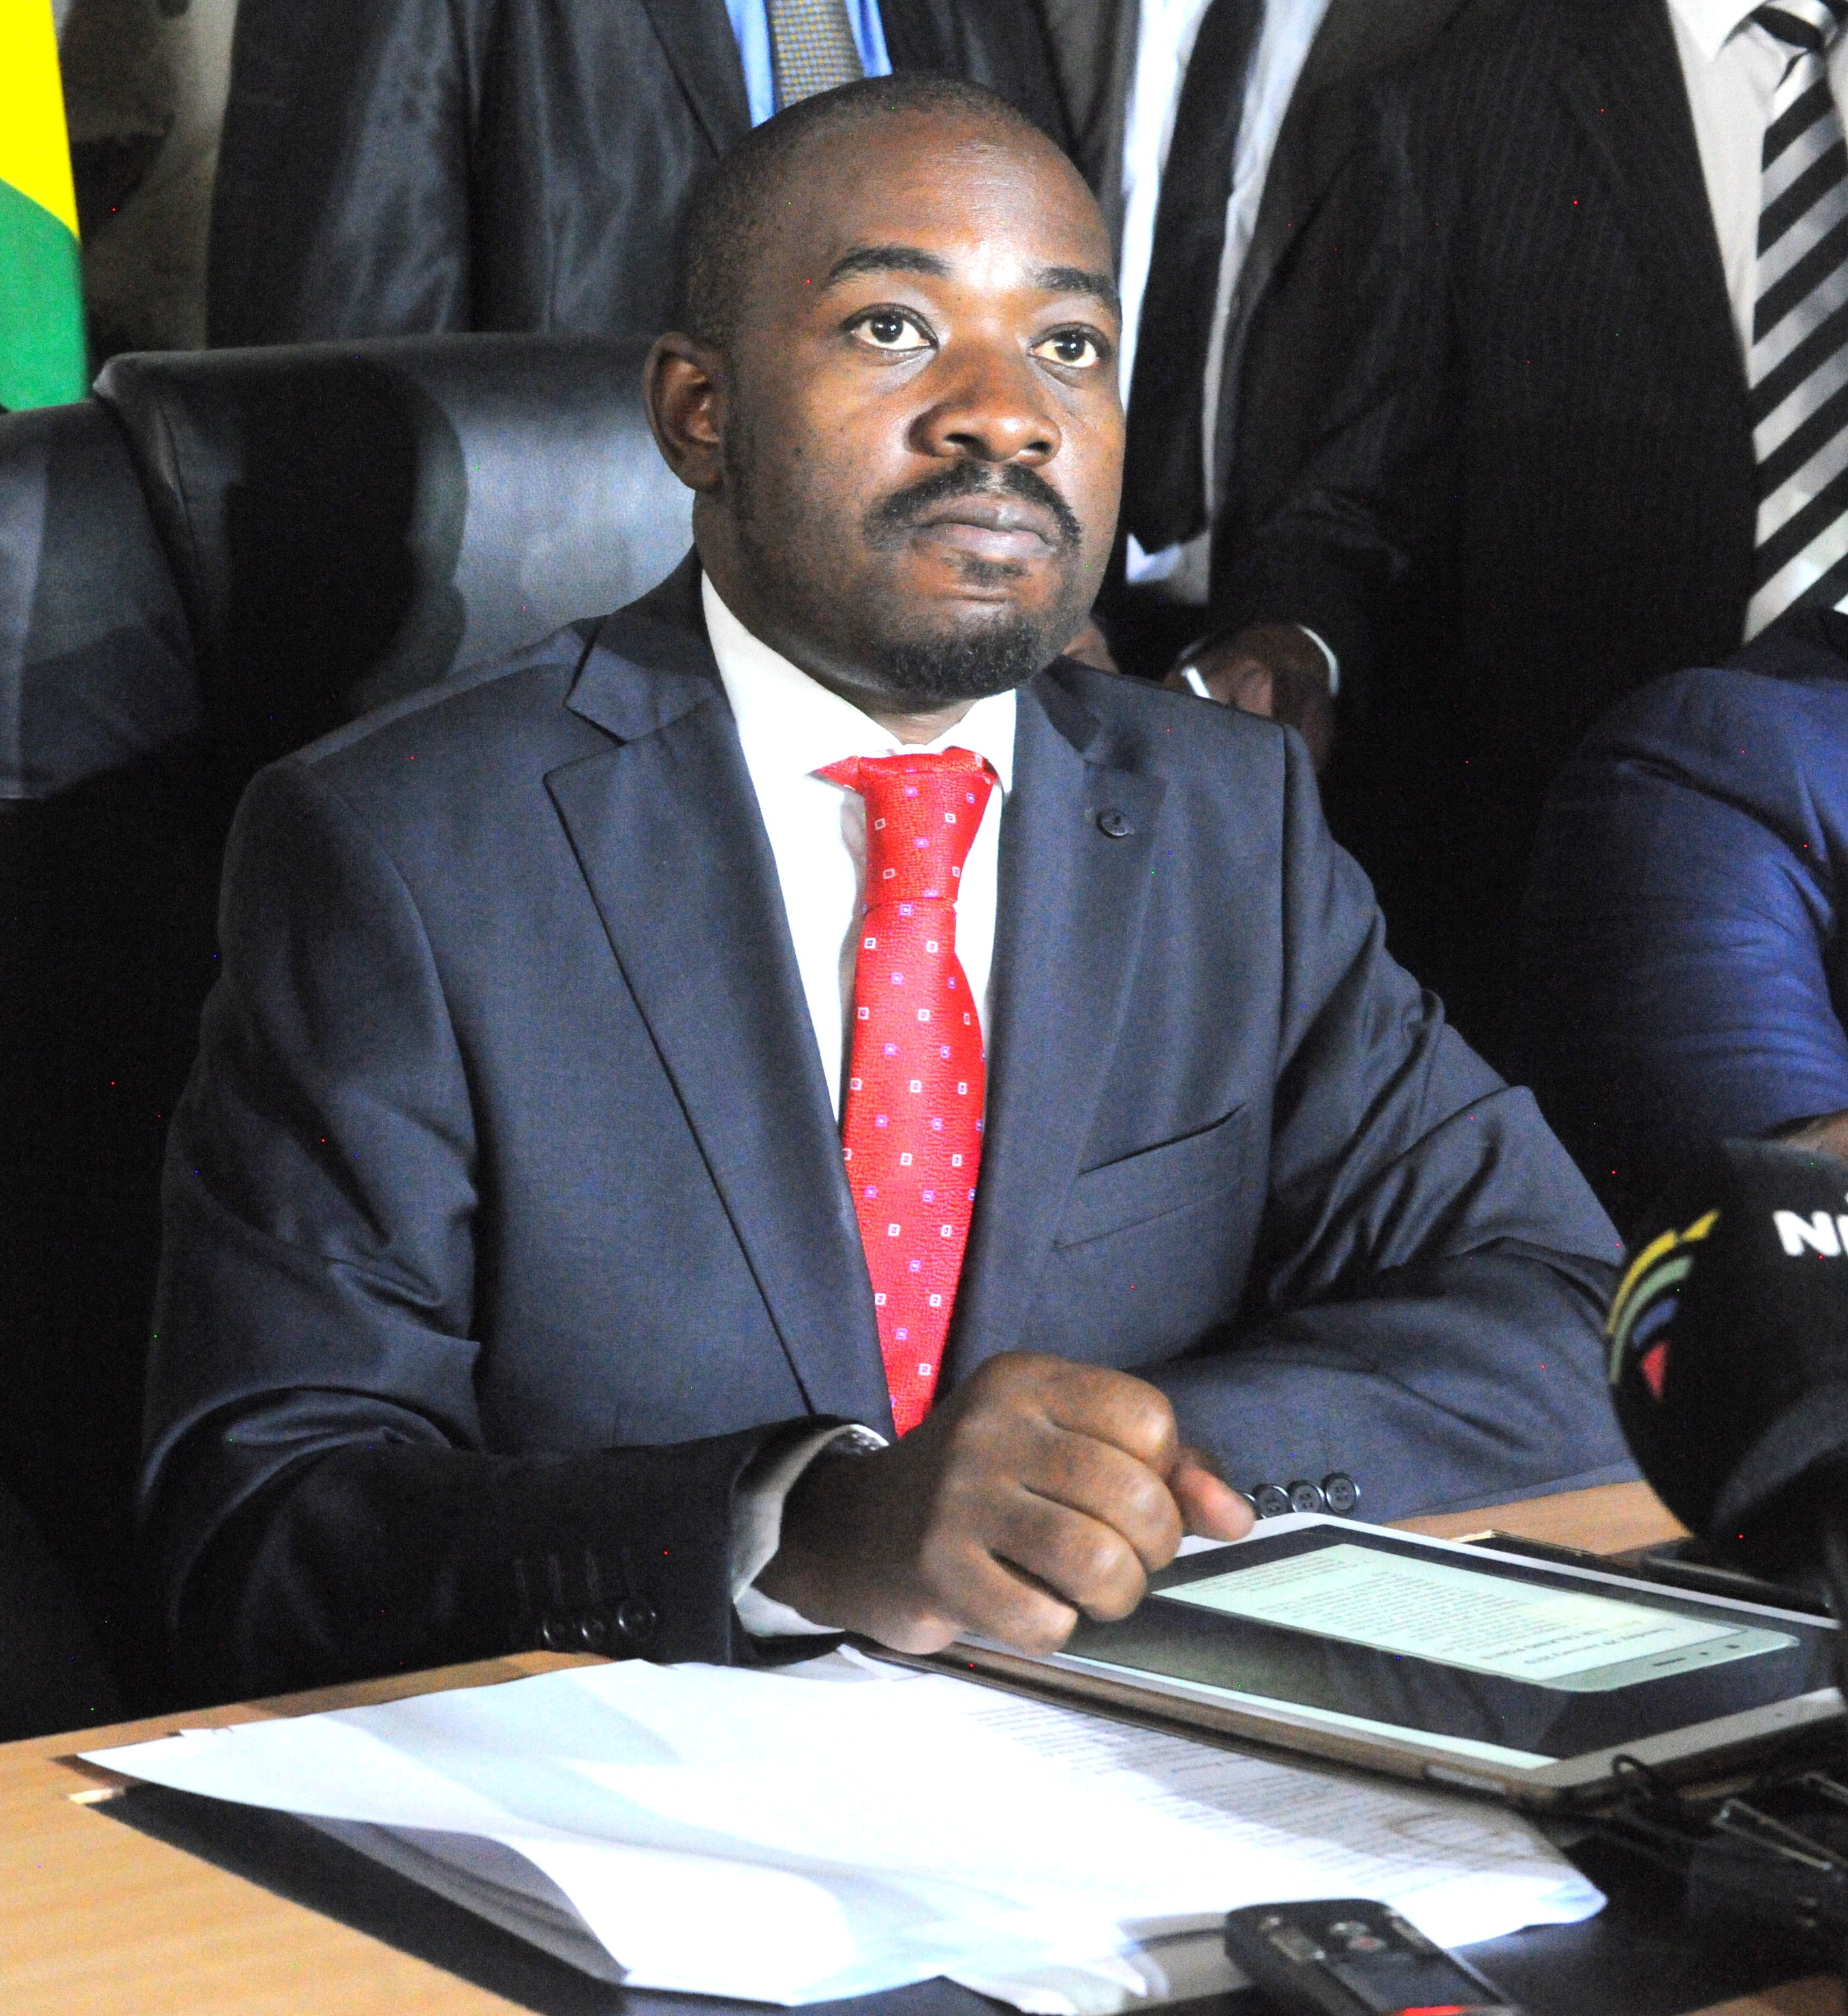 Chamisa Castigates ED Over 'Rogue Elements' Remarks » 263Chat